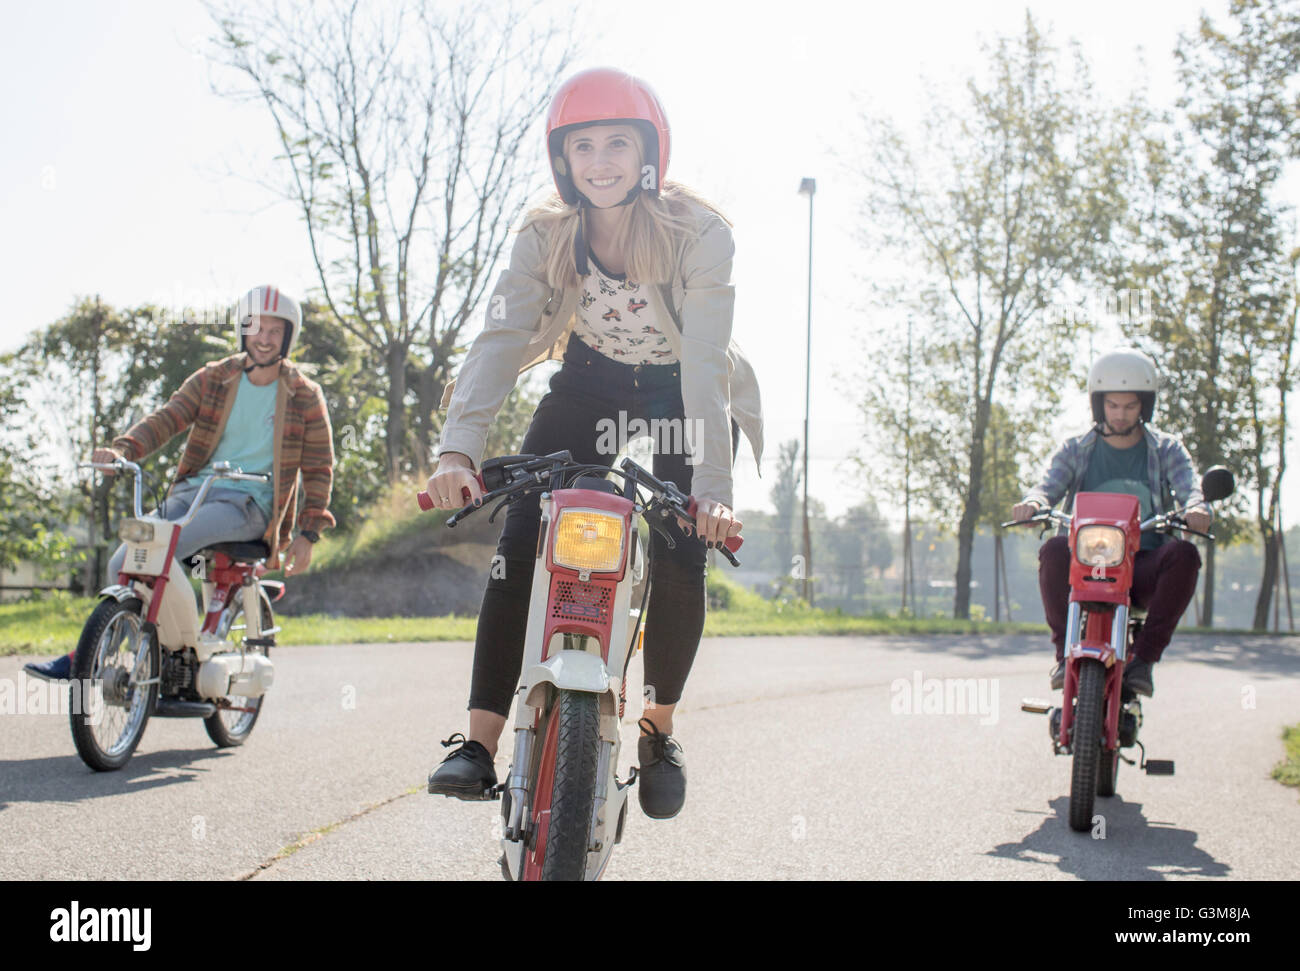 Group of friends riding mopeds along road, young female rider in foreground - Stock Image